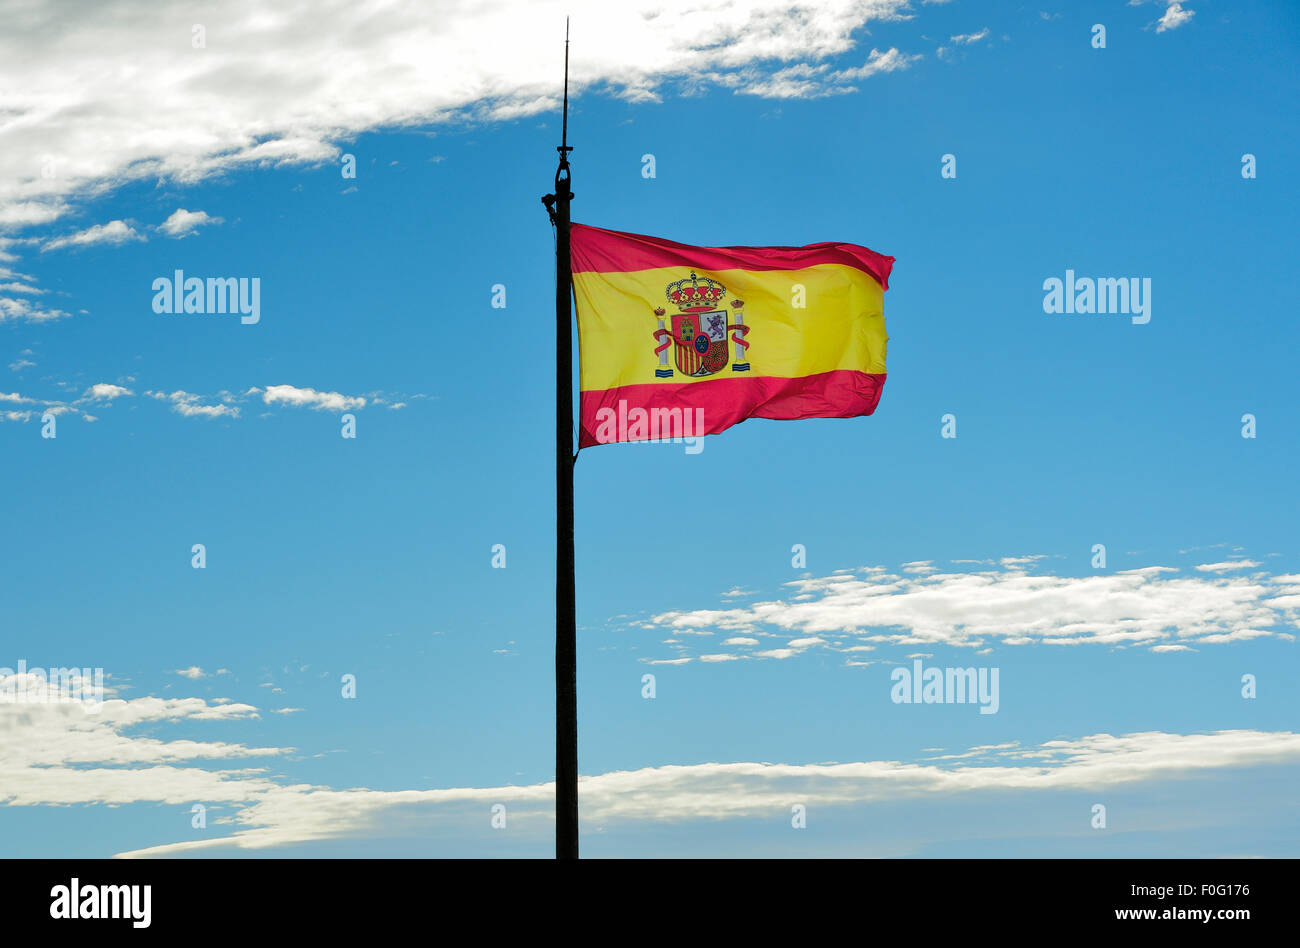 SPANISH FLAG PHOTOGRAPHED FROM THE FRONT - Stock Image